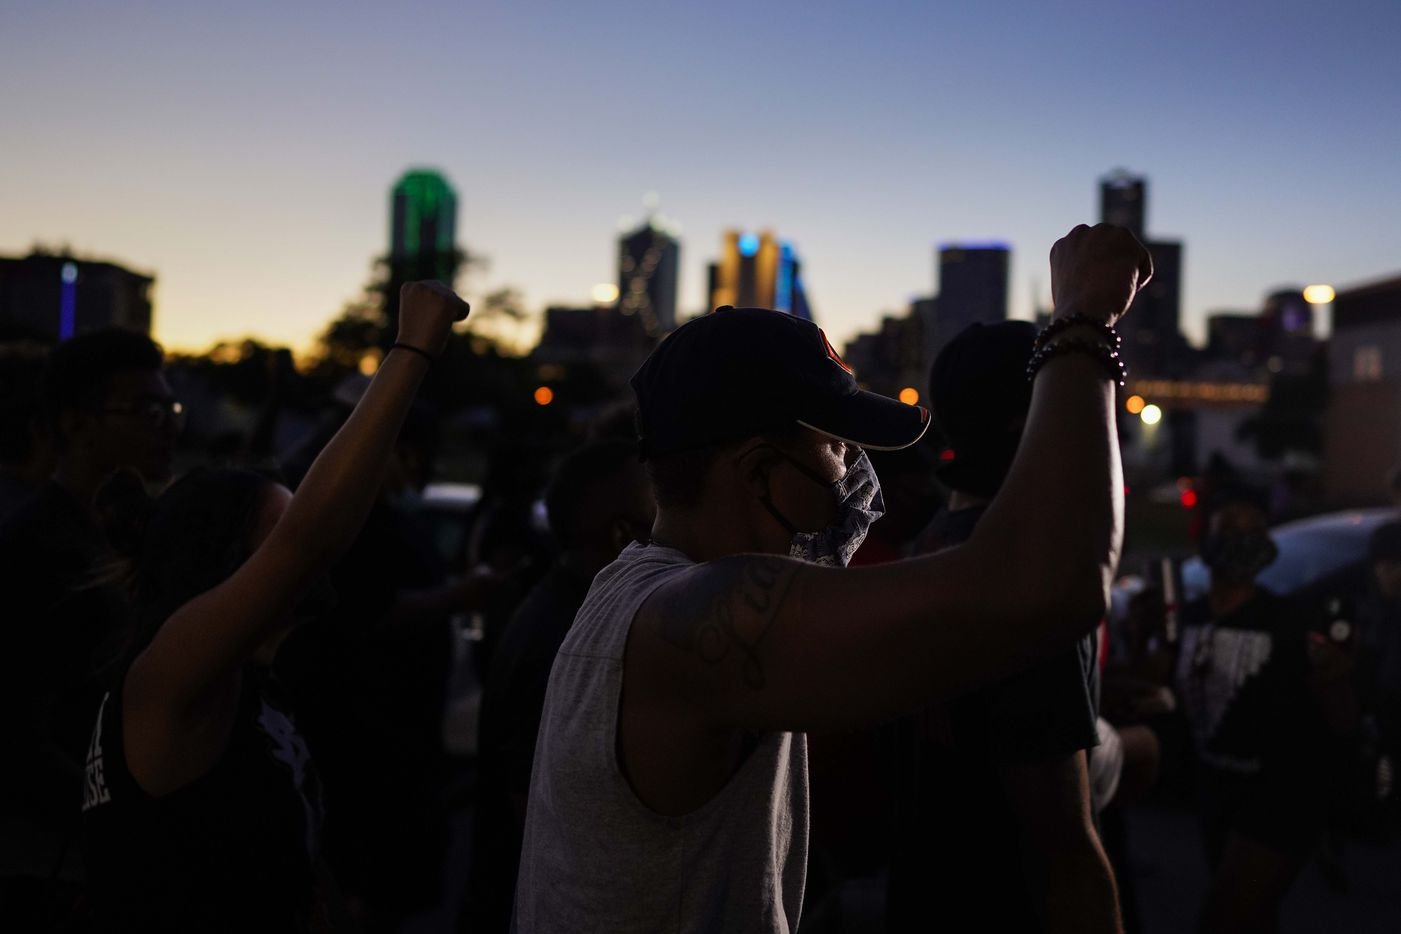 Protesters march against police brutality as they depart a rally at the Dallas Police Headquarters on Friday, May 29, 2020, in Dallas.